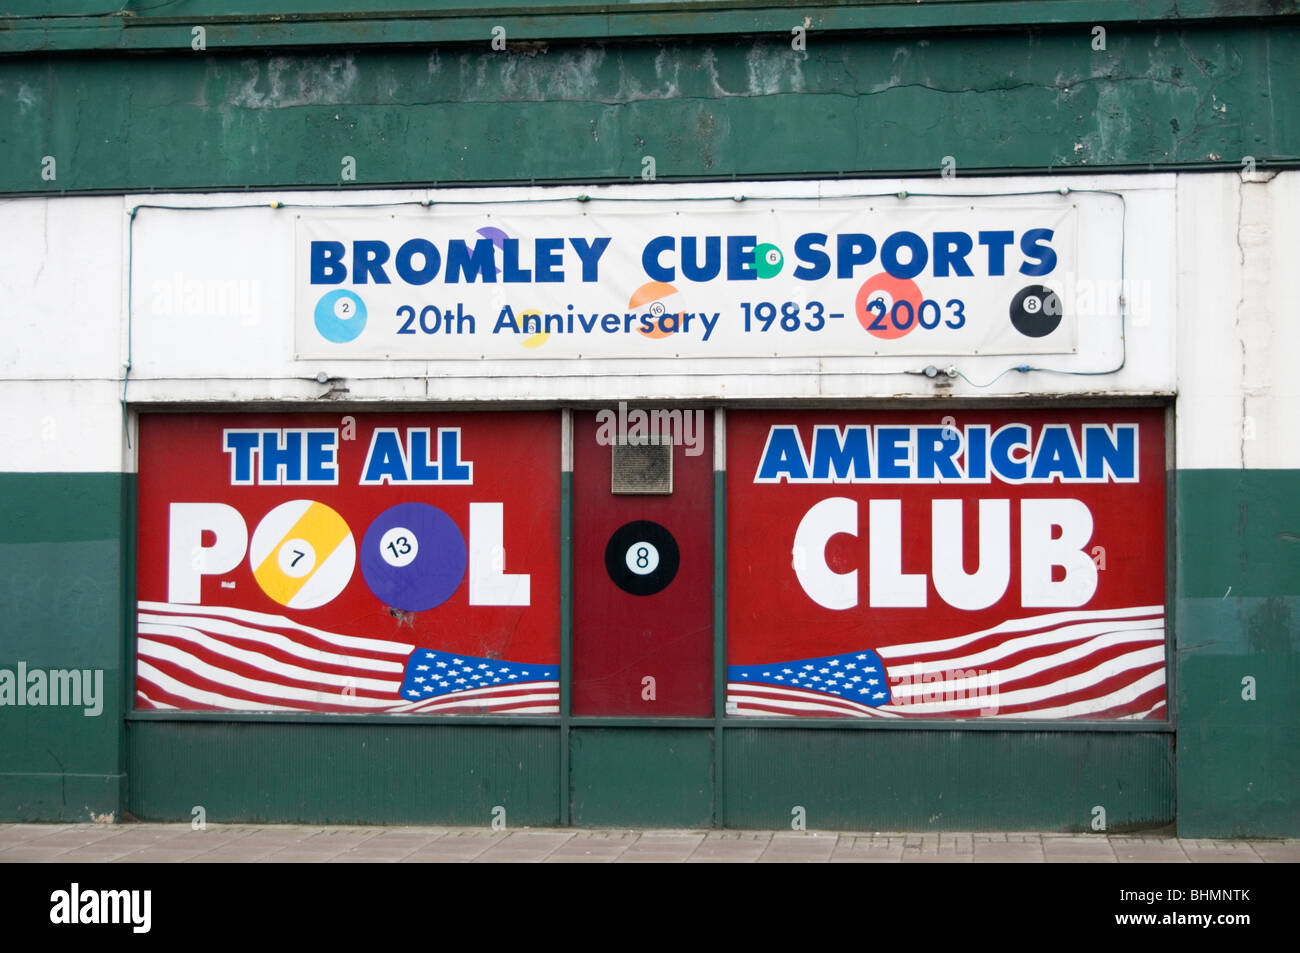 Bromley Cue Sports, Bromley, South London - Stock Image